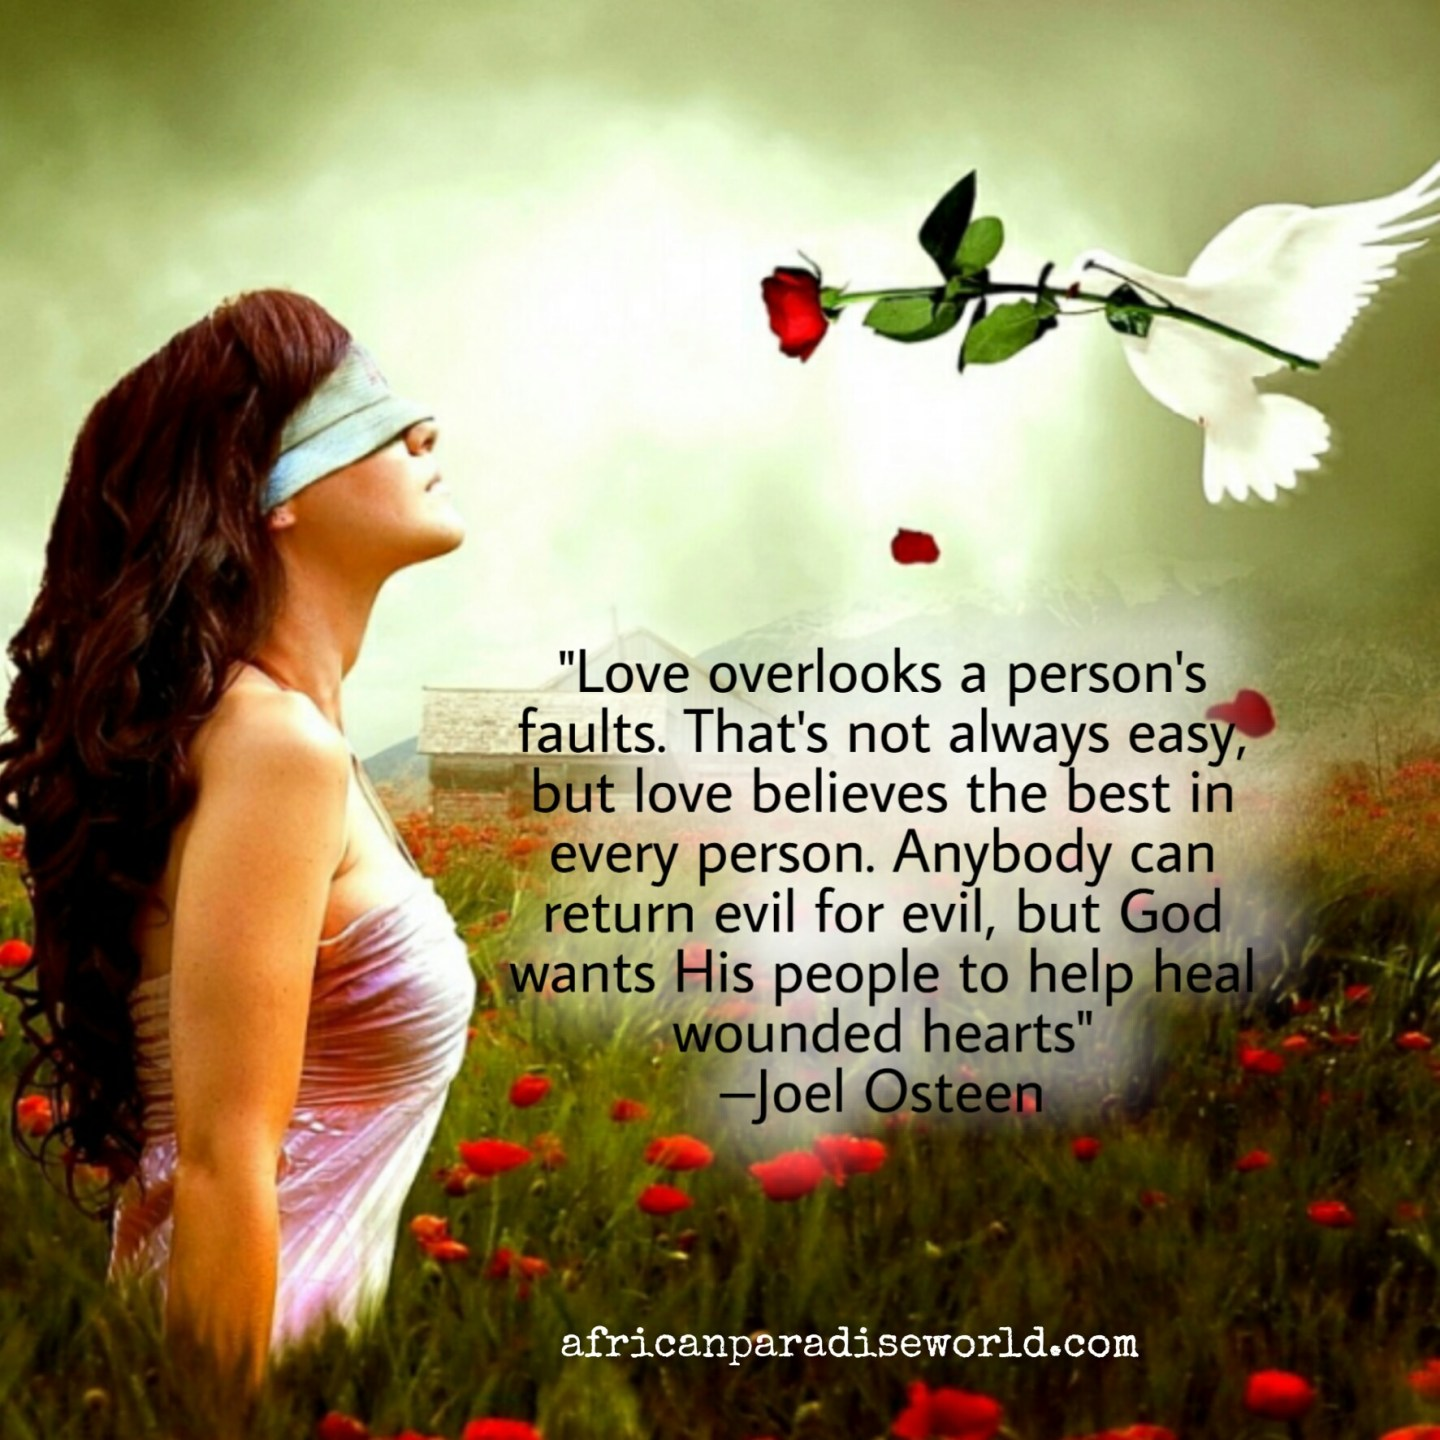 Joel Osteen quotes anout God